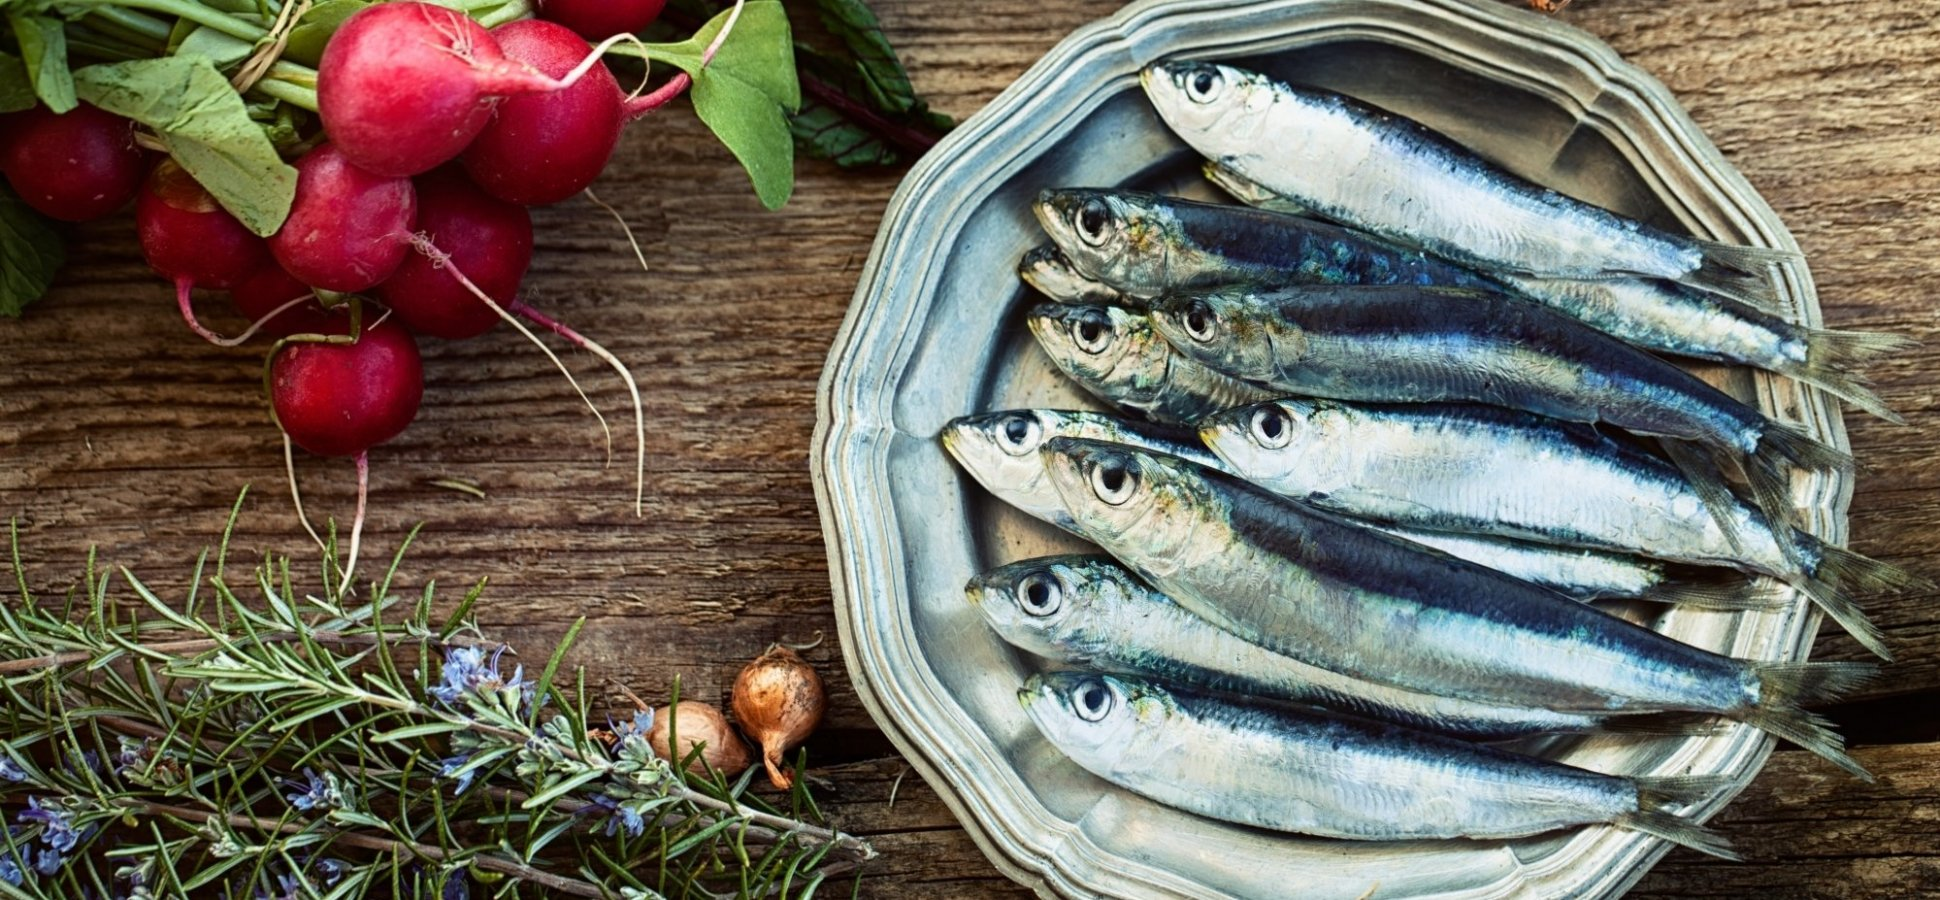 Why Does This Successful Entrepreneur Eat 5 Cans of Sardines Every Day?